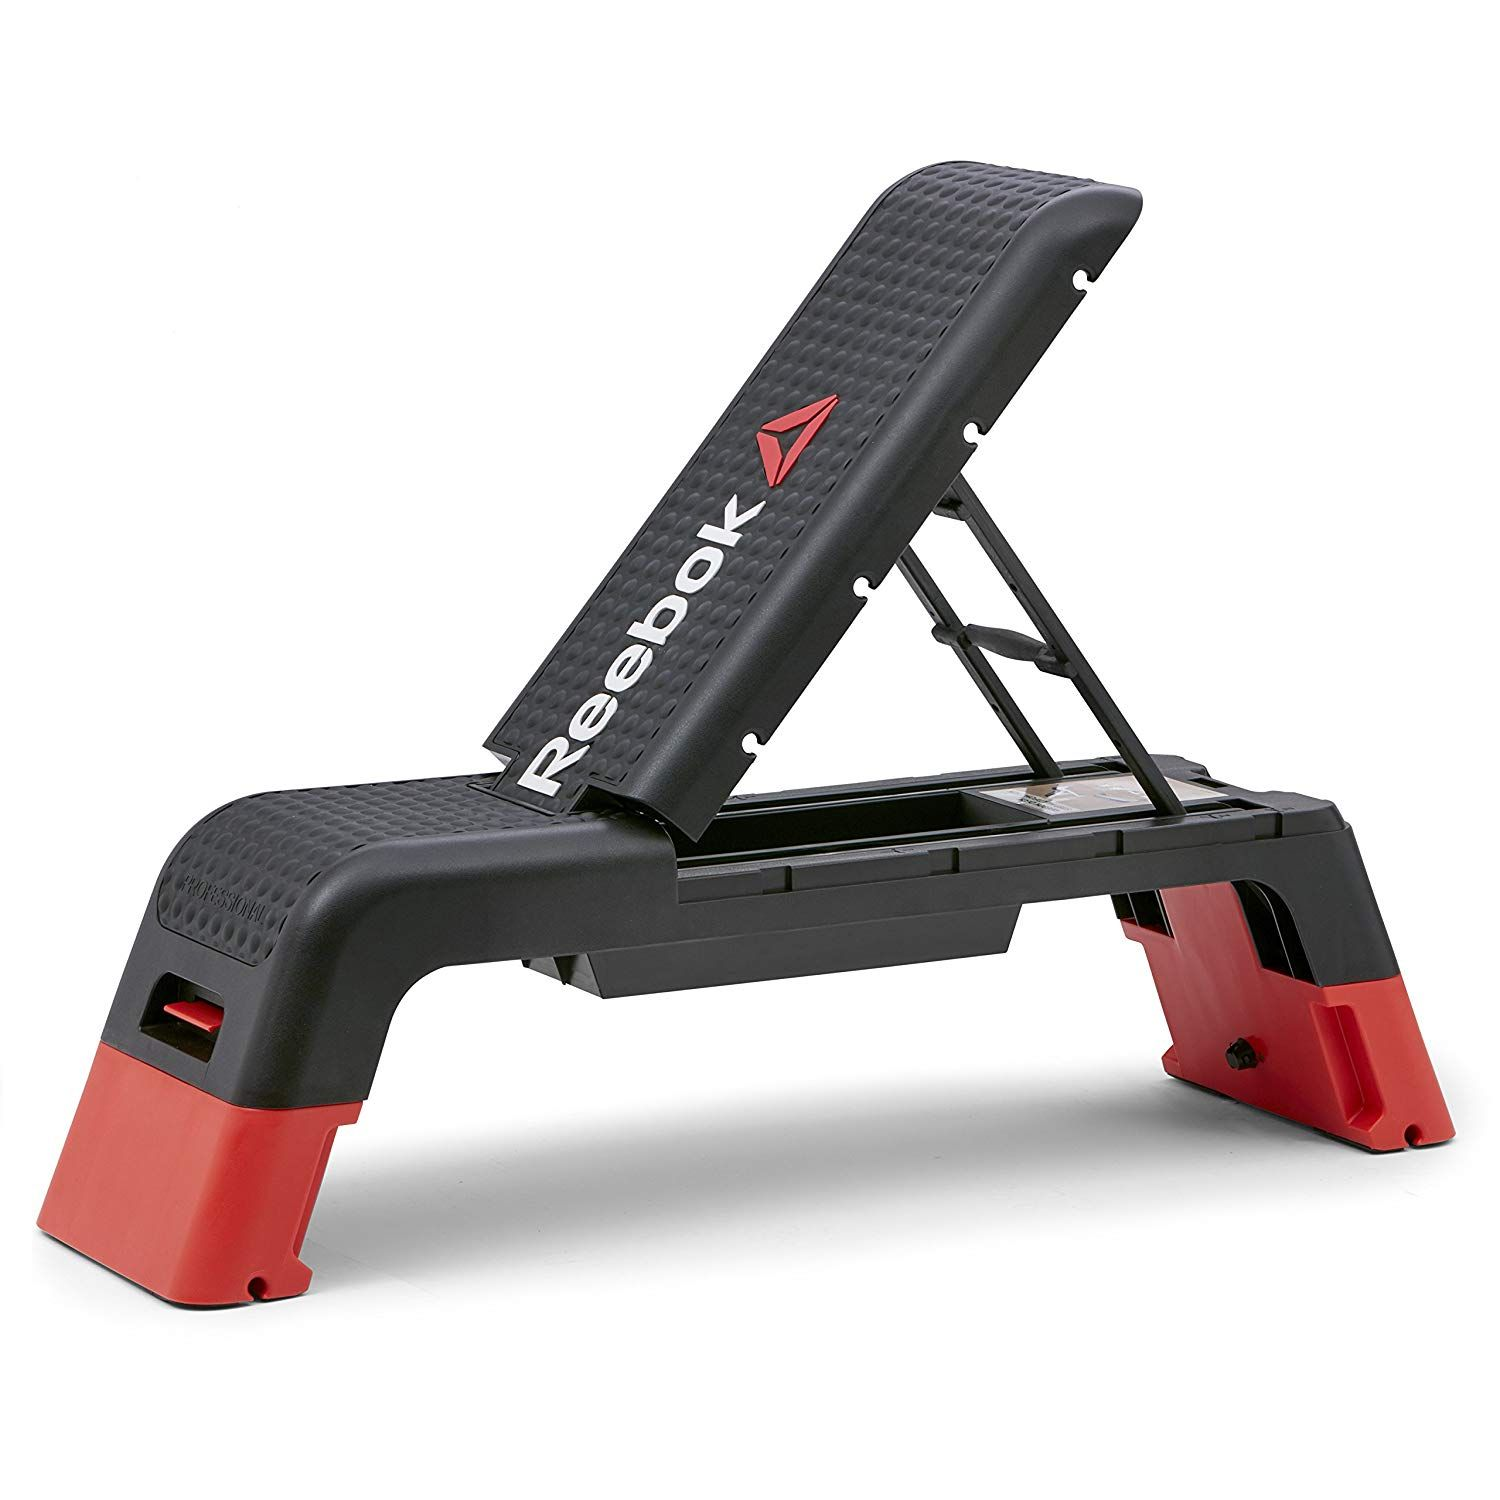 Top 9 Best Foldable Weight Bench Reviews In 2020 In 2020 Weight Benches No Equipment Workout At Home Workouts